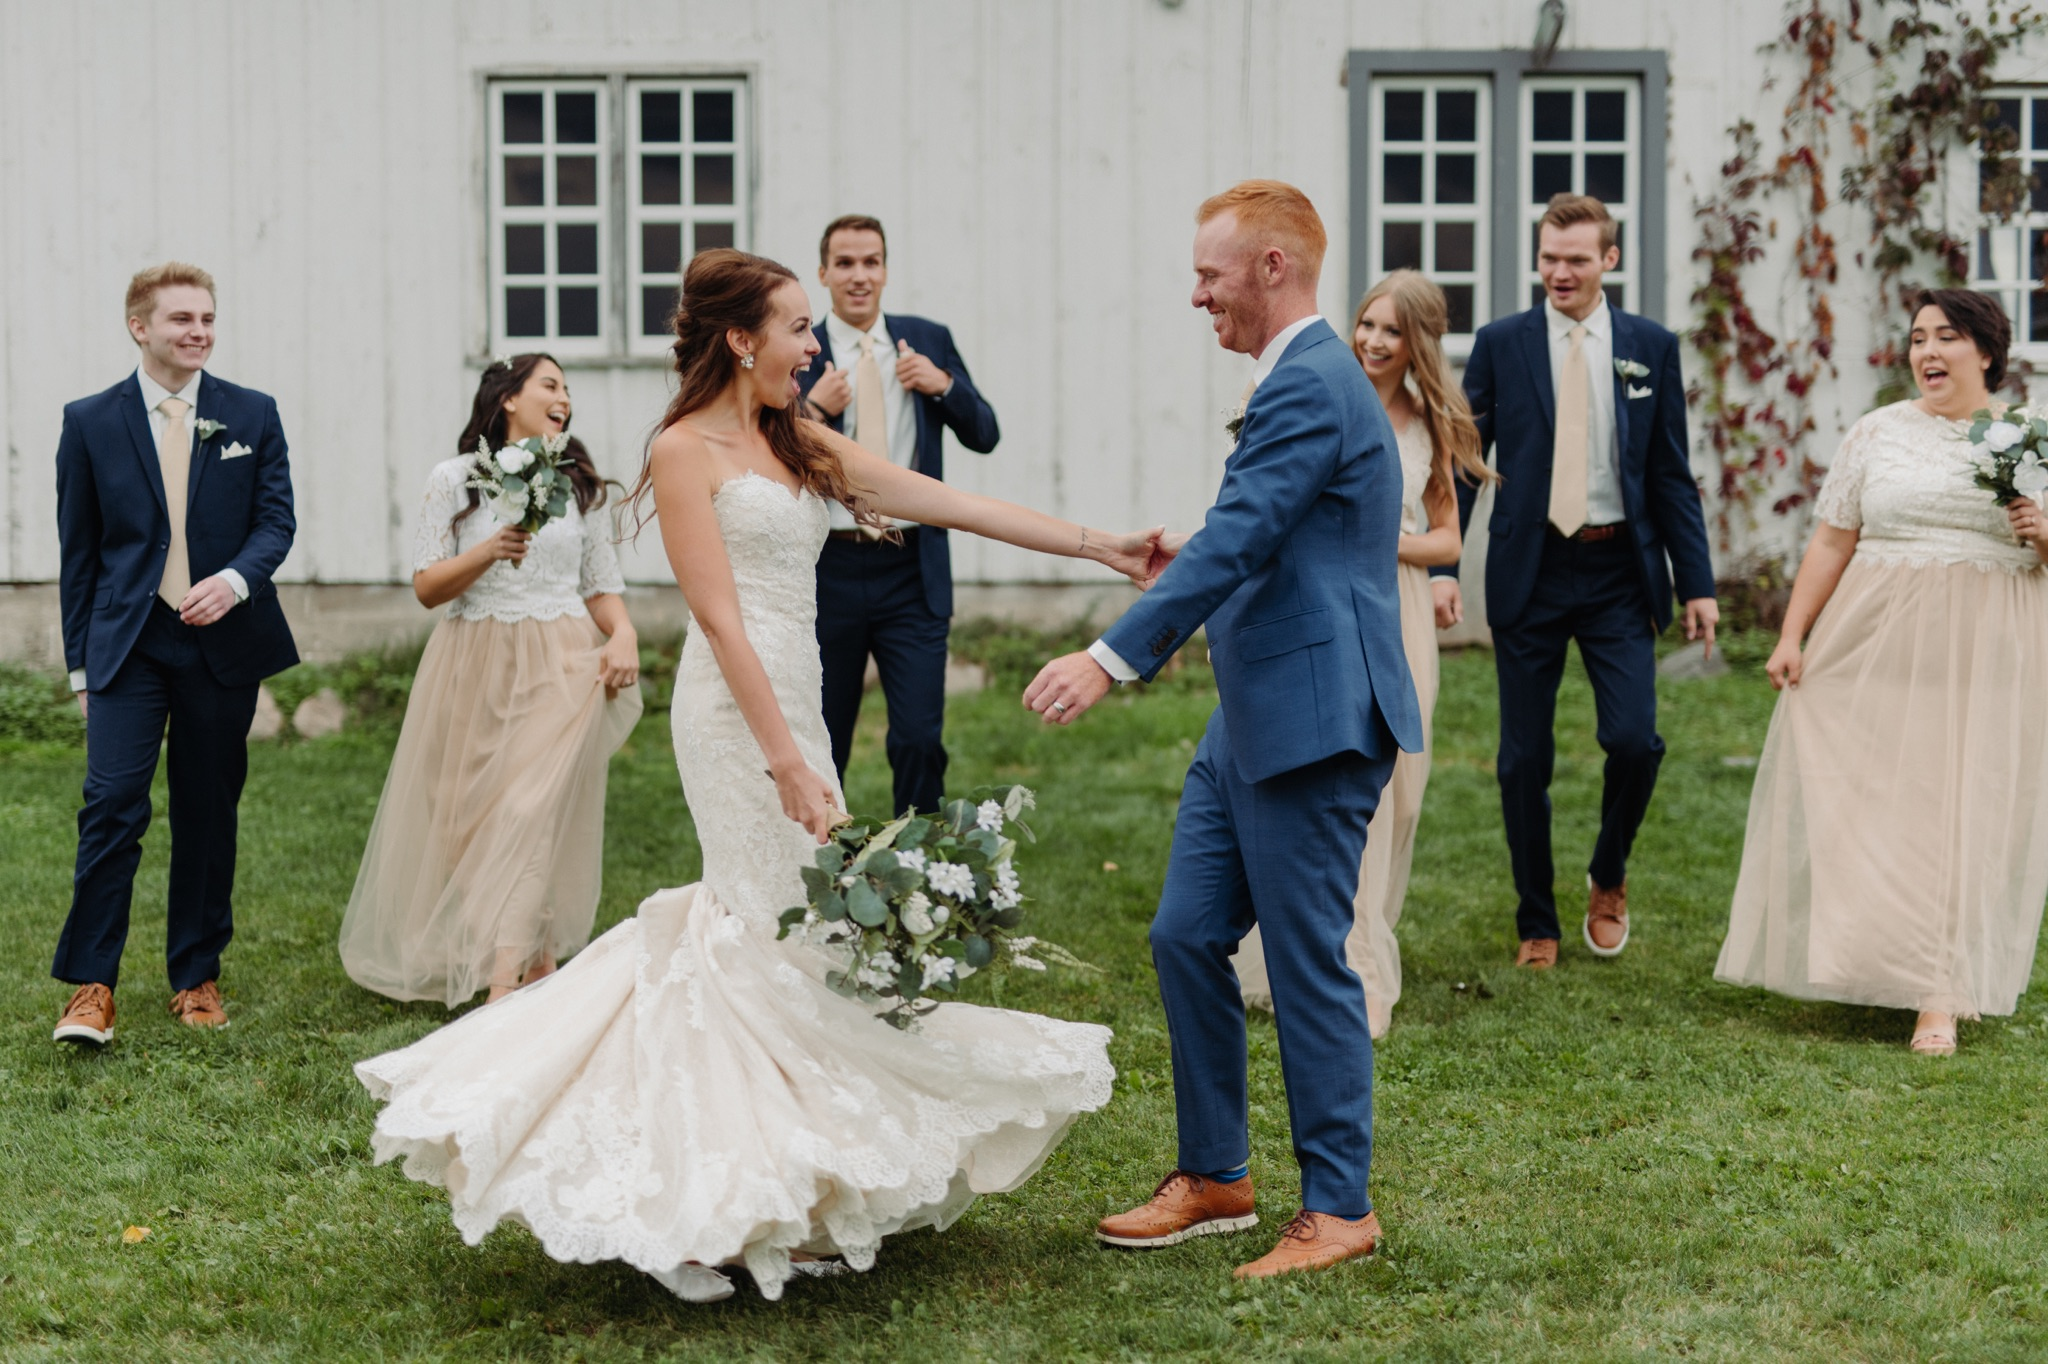 bride and groom dancing with wedding party behind them